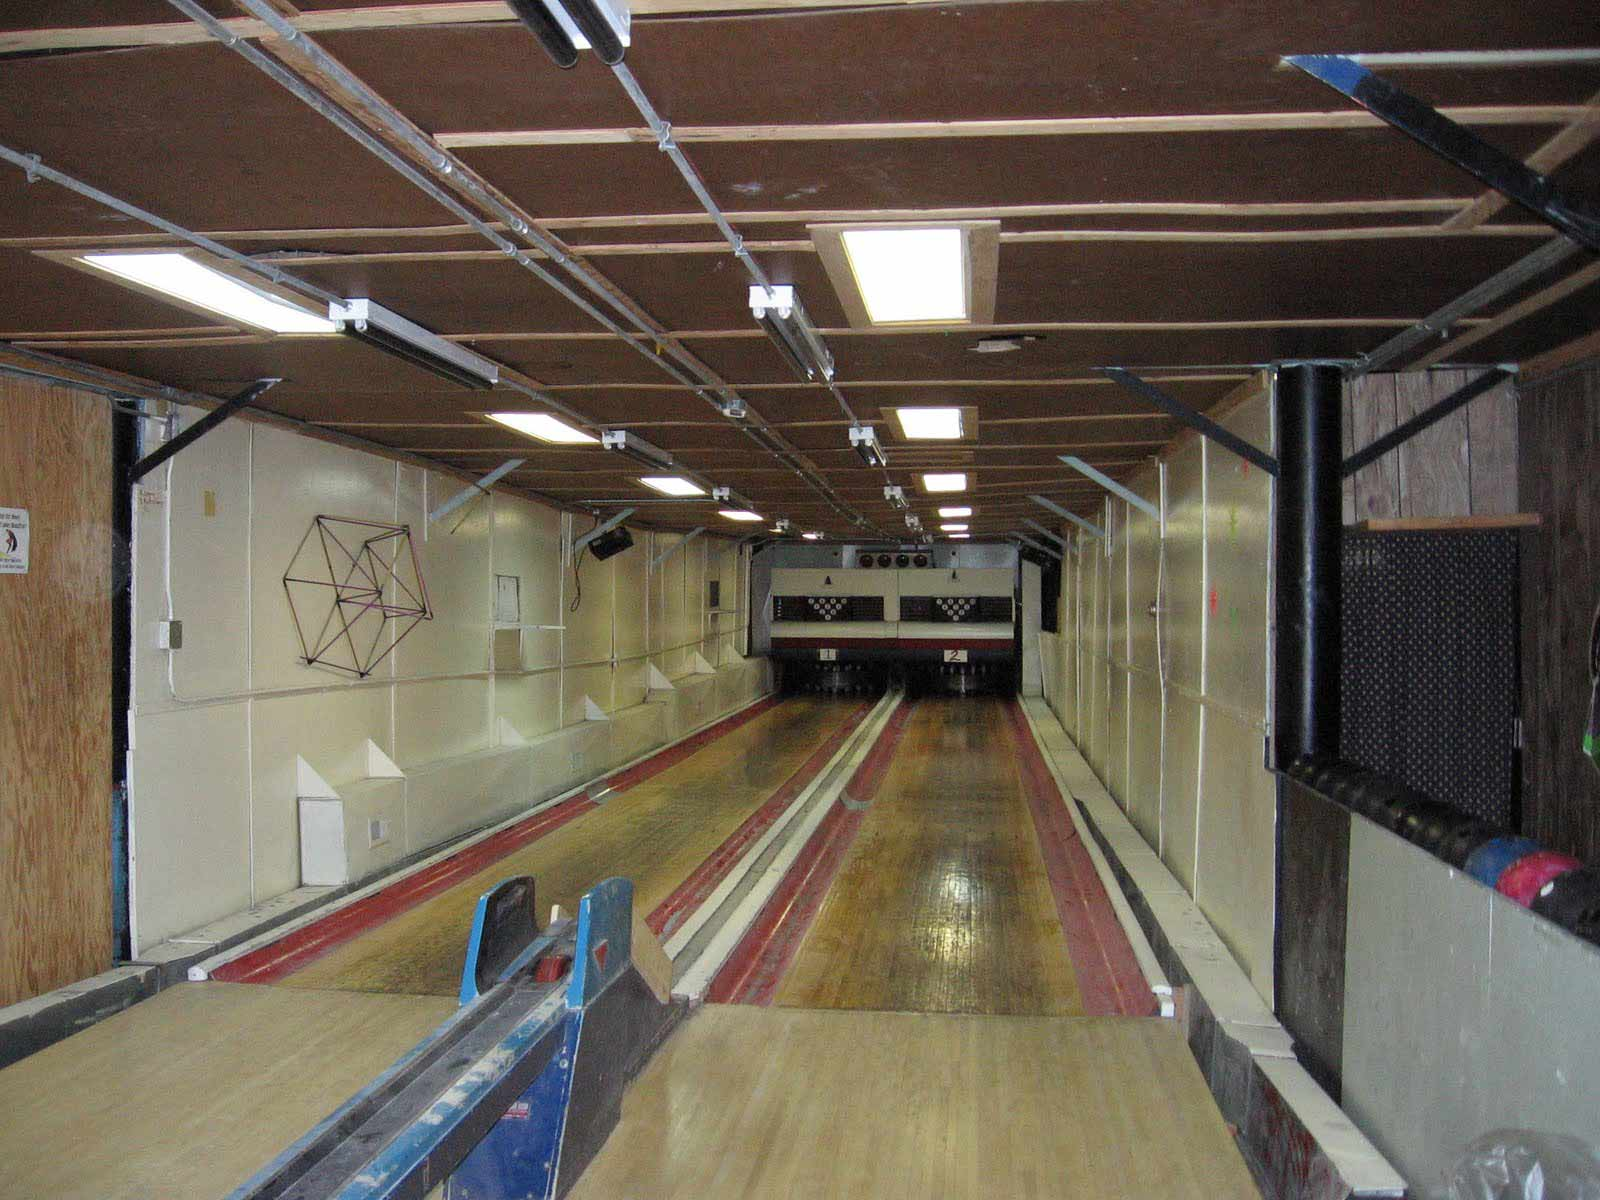 2009 10 s Away with the bowling alley